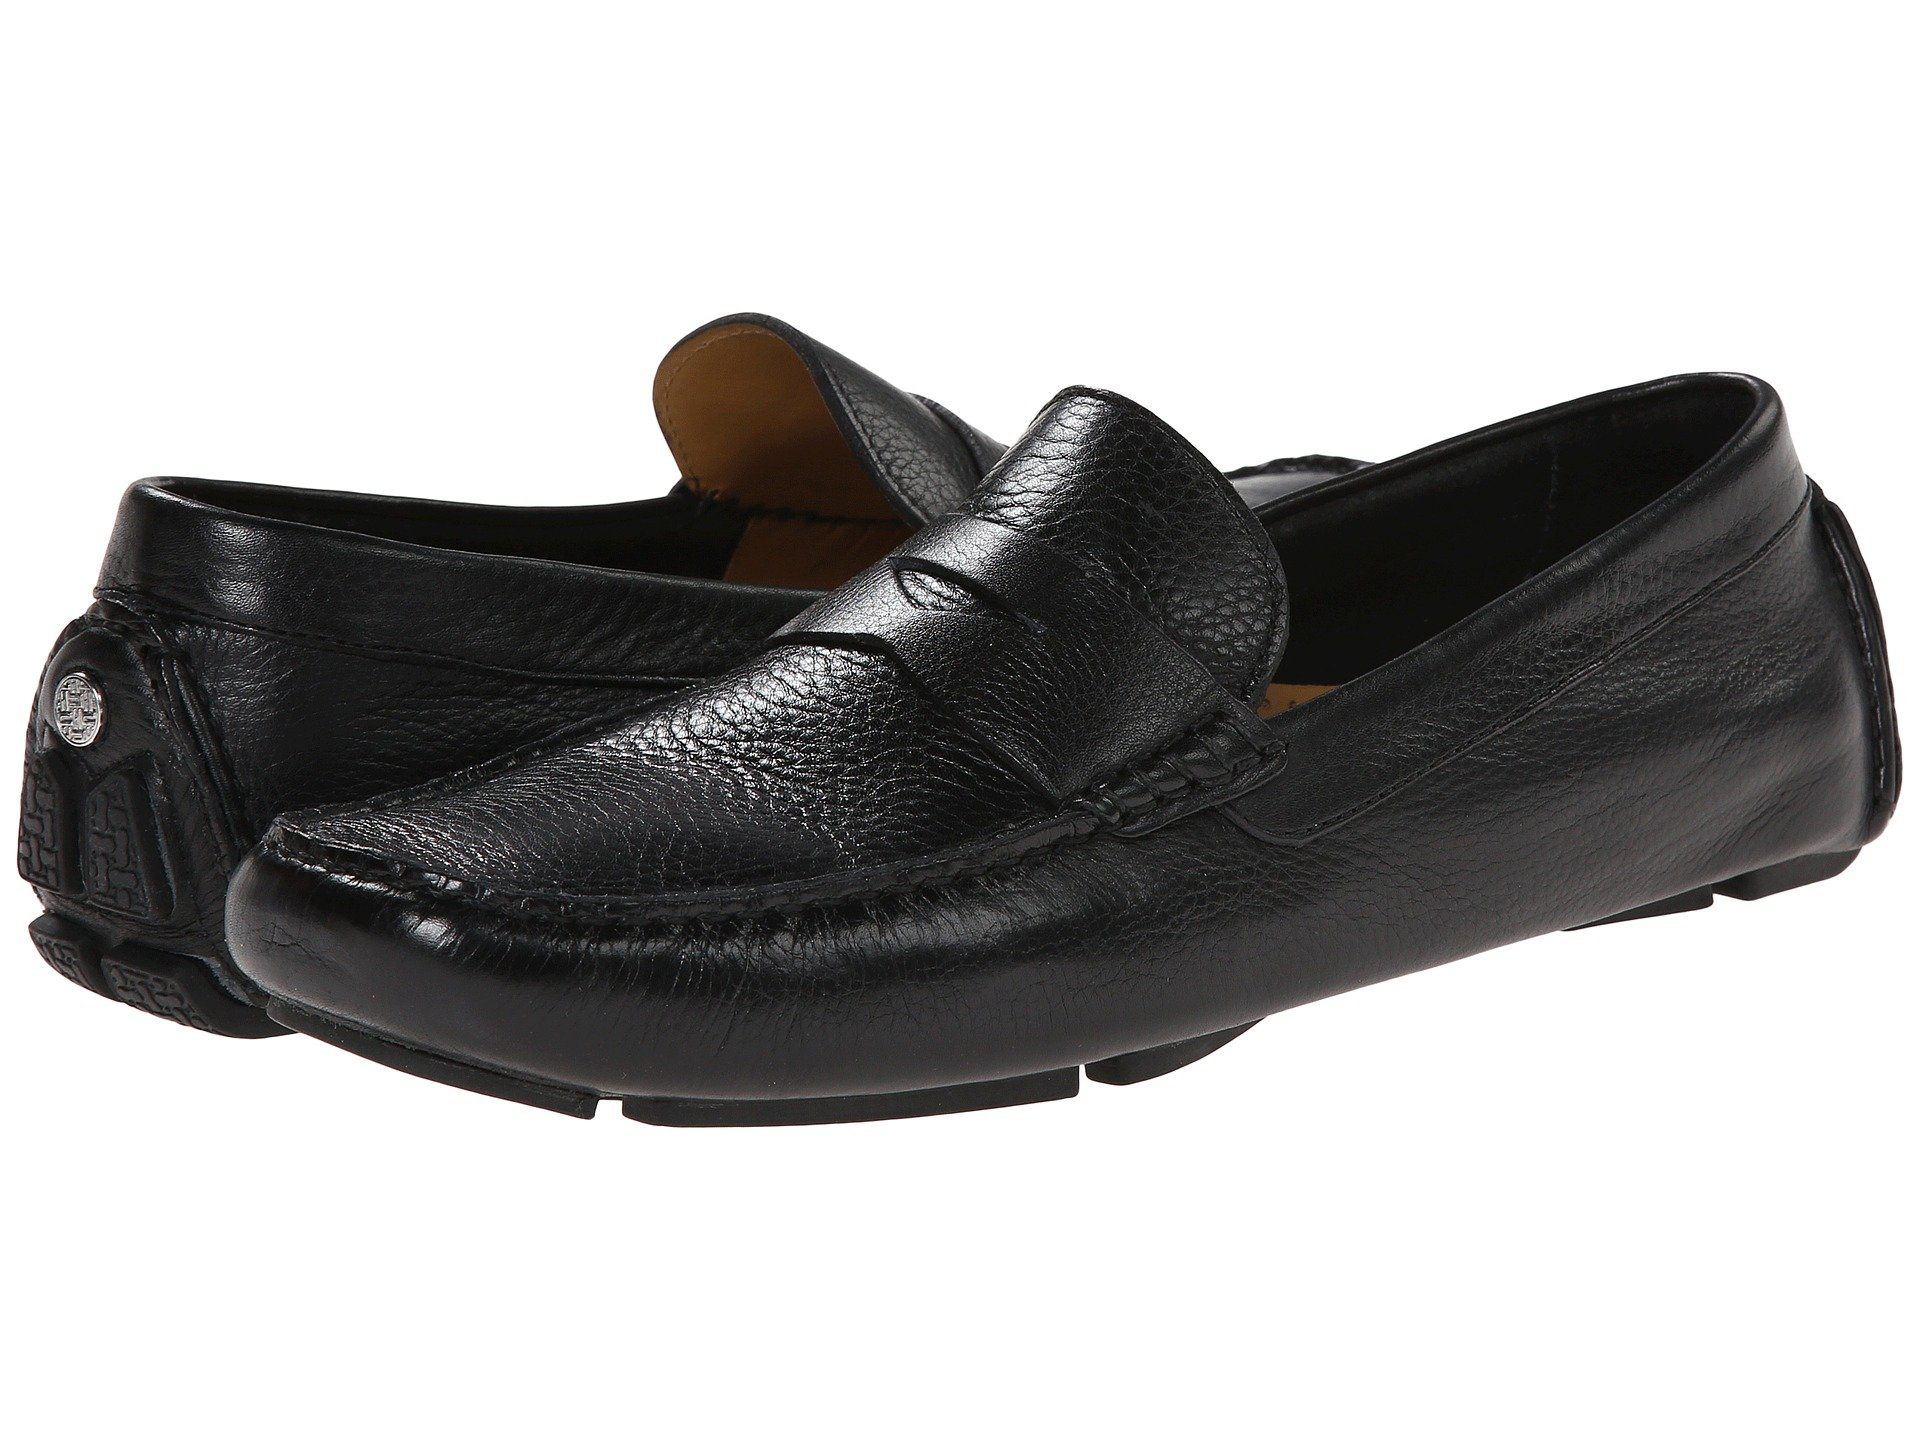 mens shoes loafers HBIOAPR